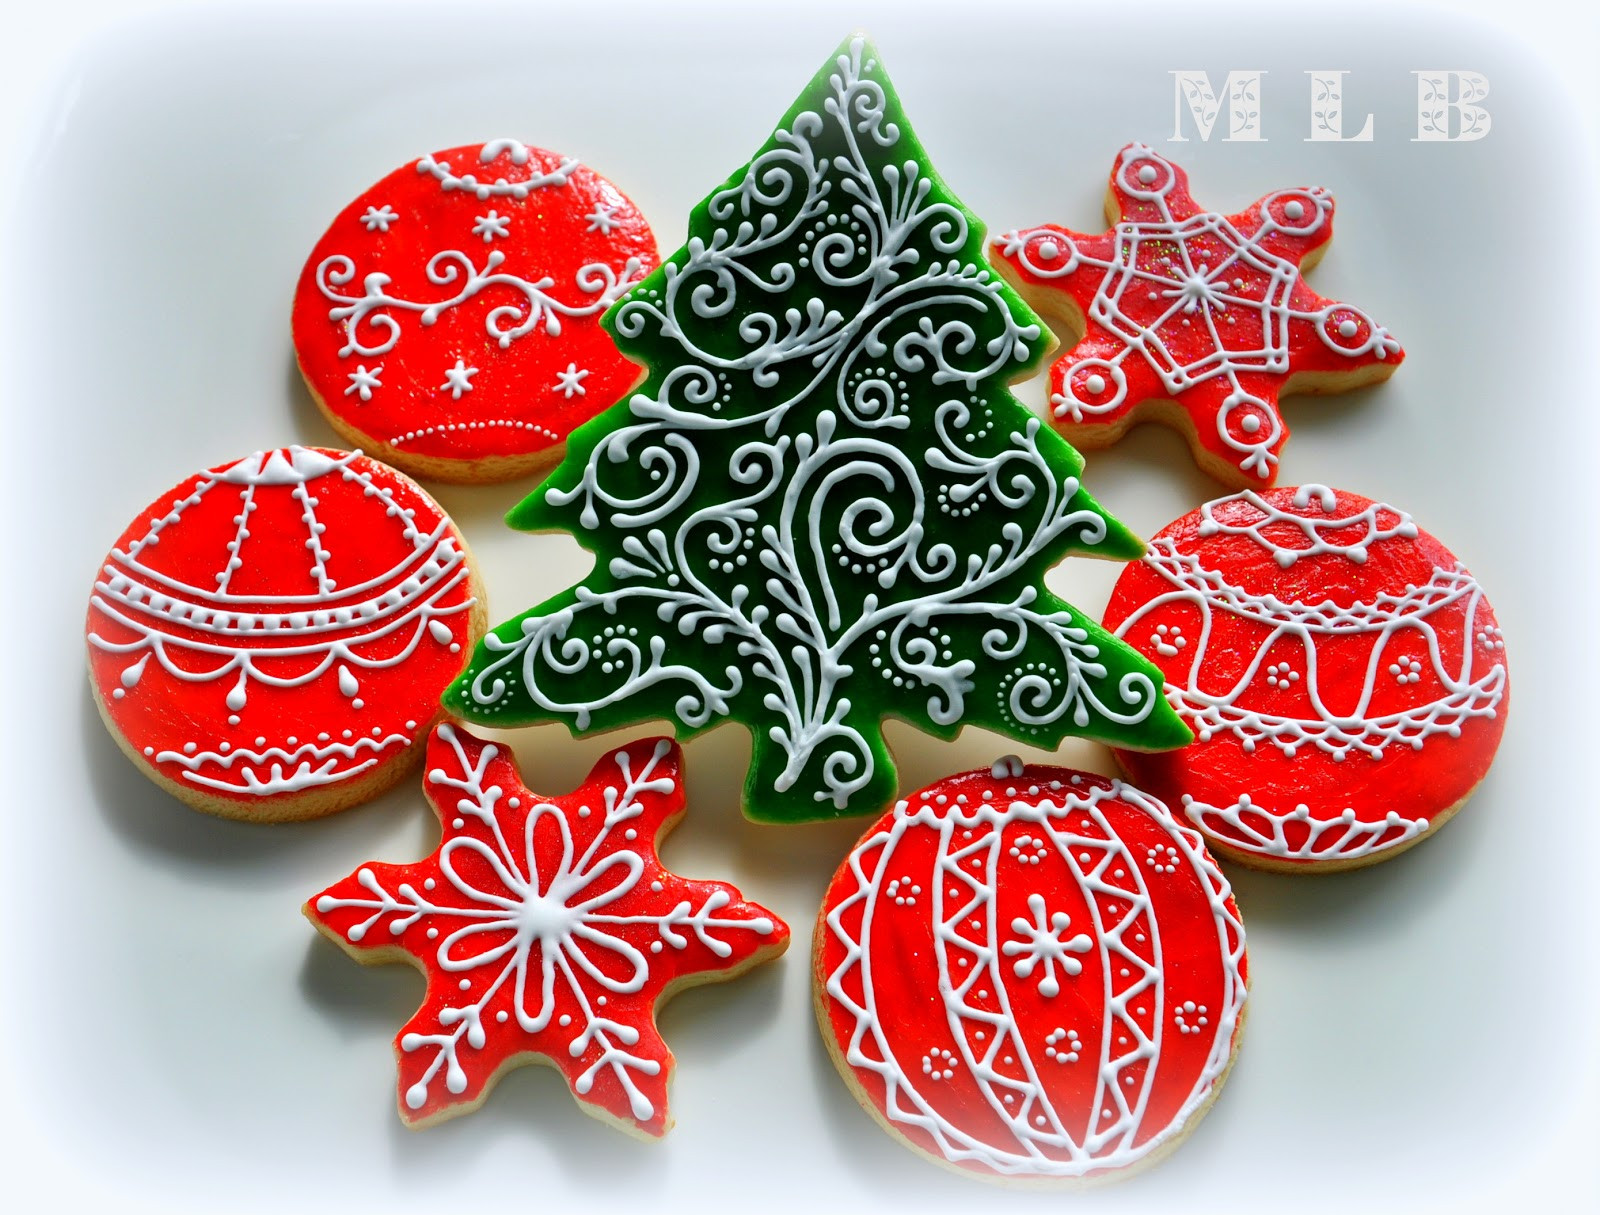 Christmas Cookies Image  My little bakery 🌹 Christmas tree cookies And polish